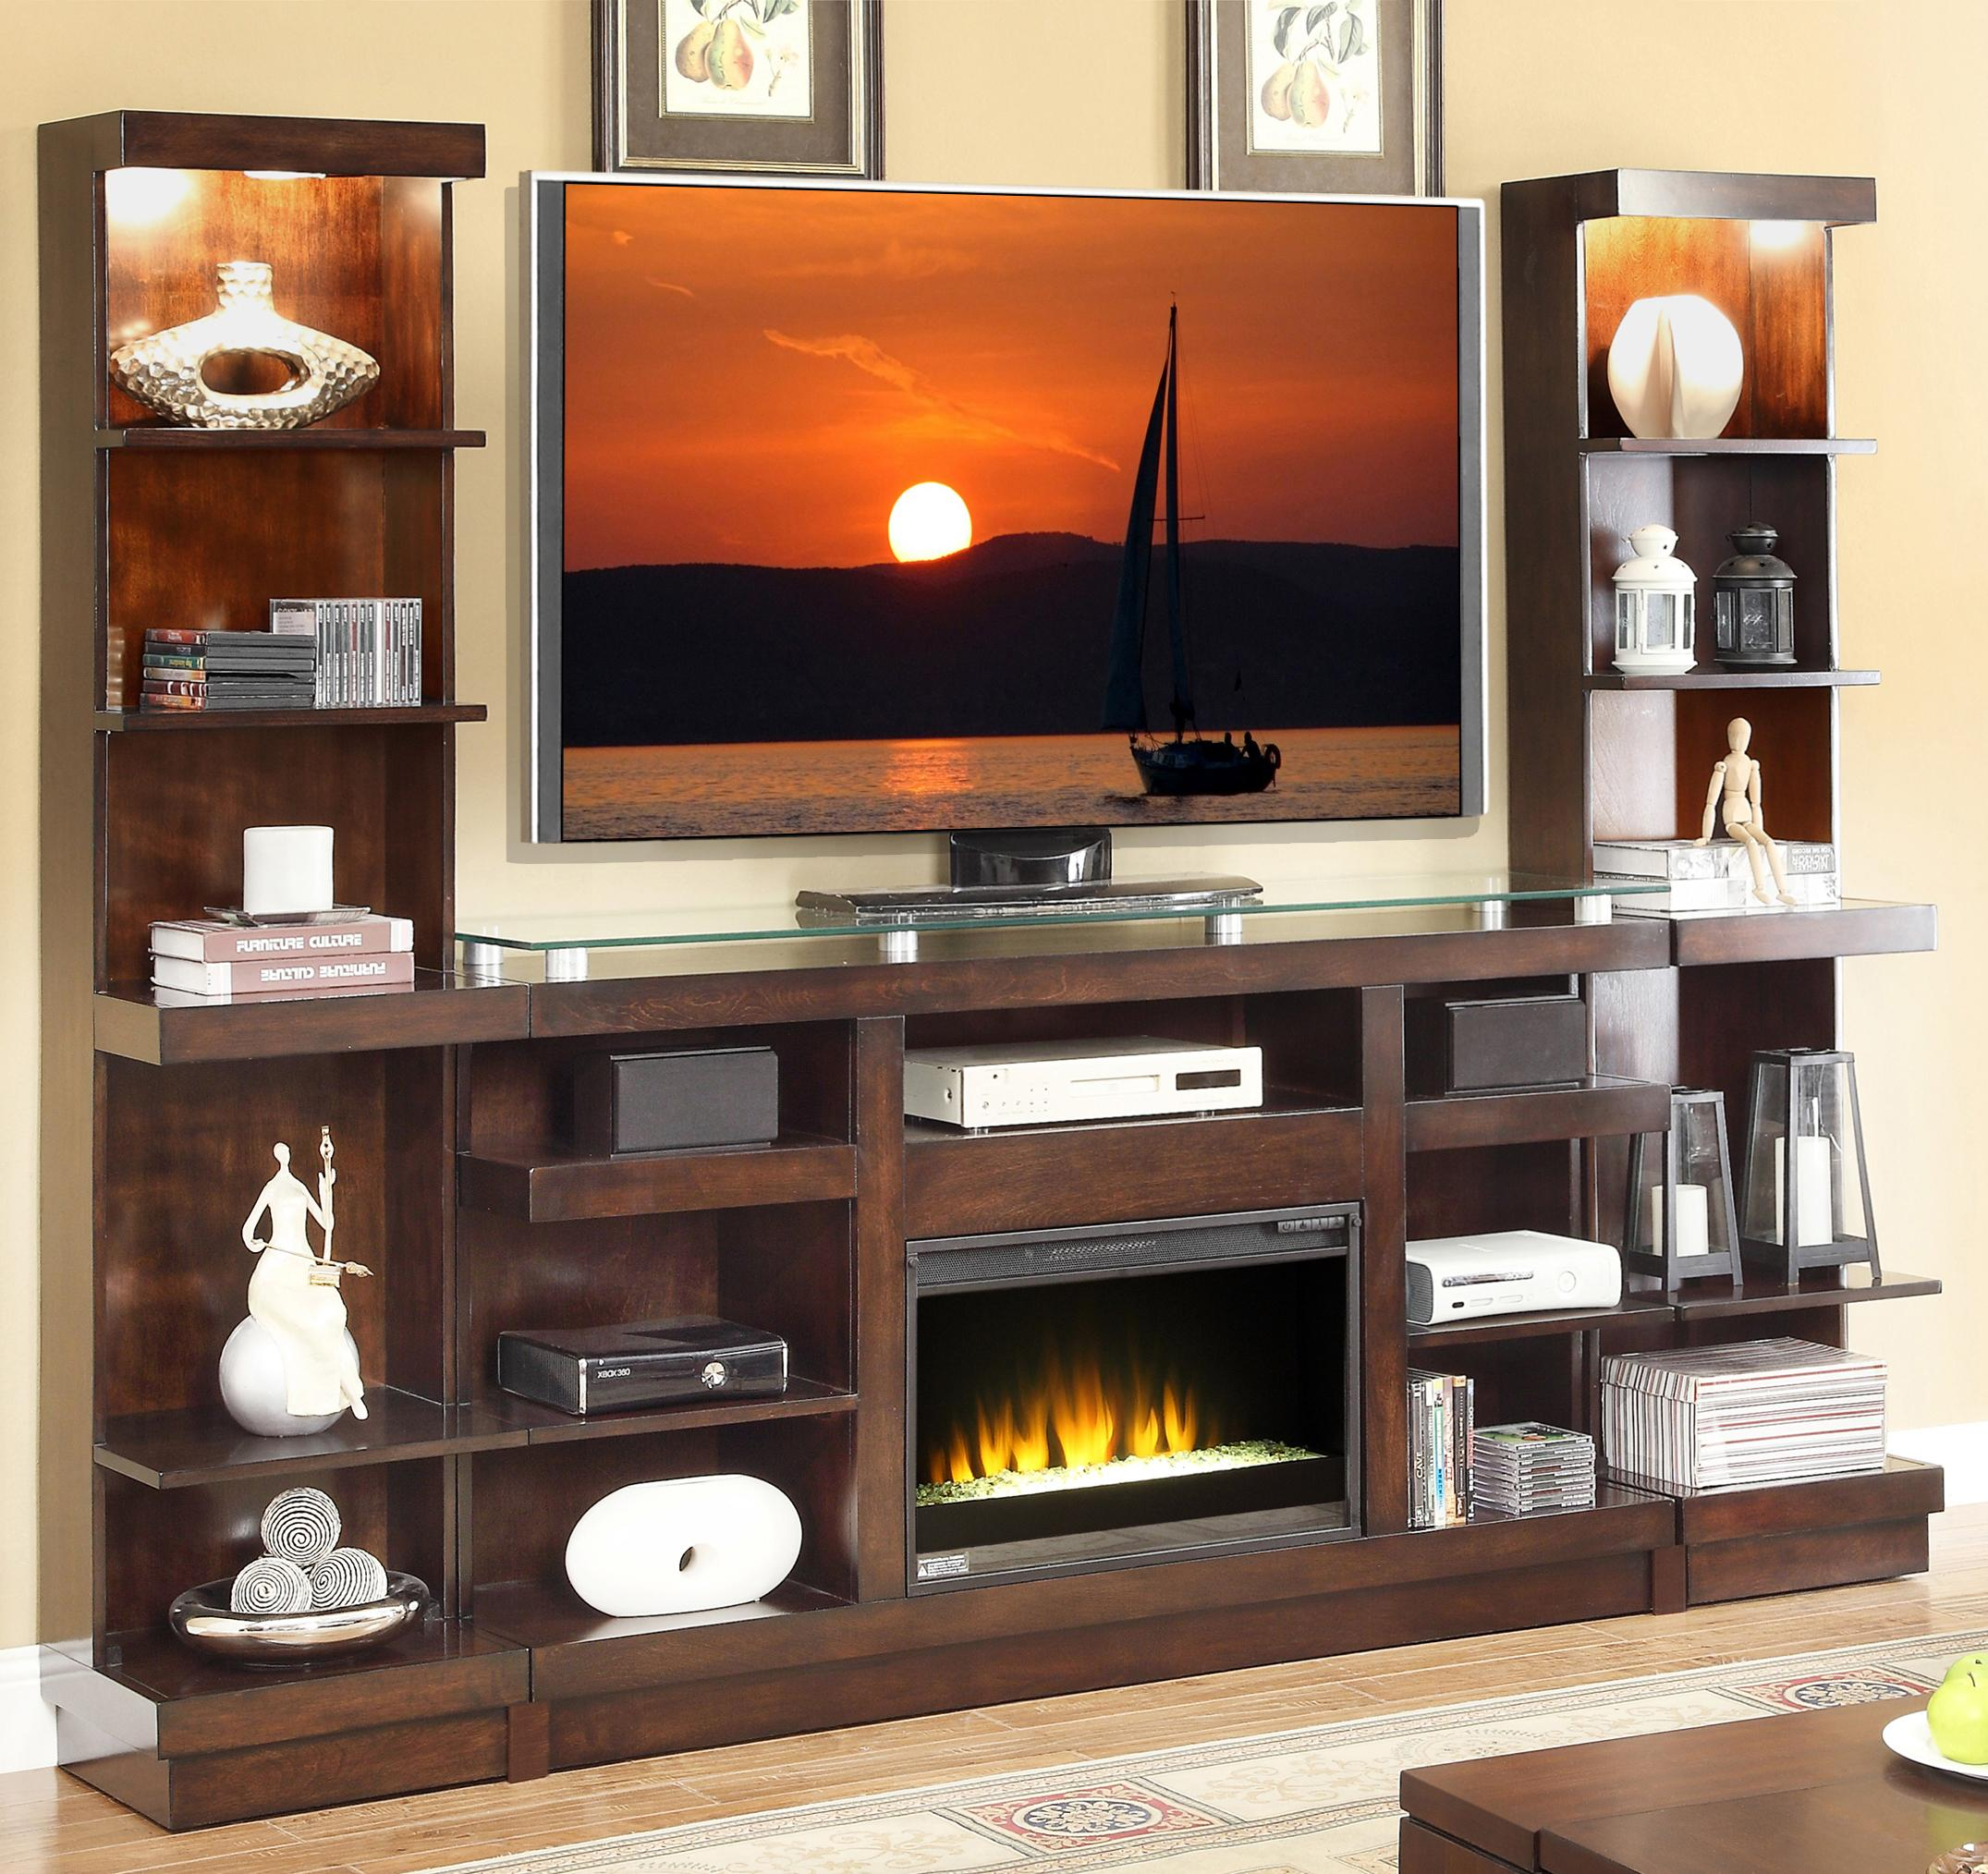 Legends Furniture Novella Entertainment Center with Fireplace and